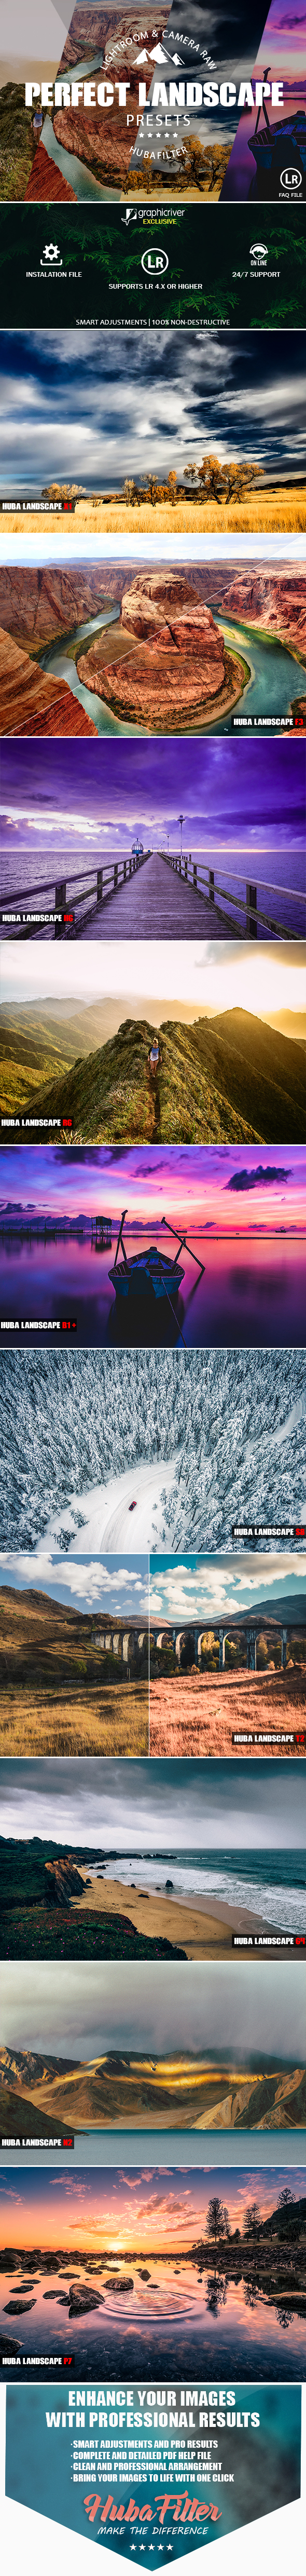 30 Perfect Landscape Lightroom & Camera Raw Presets - Landscape Lightroom Presets